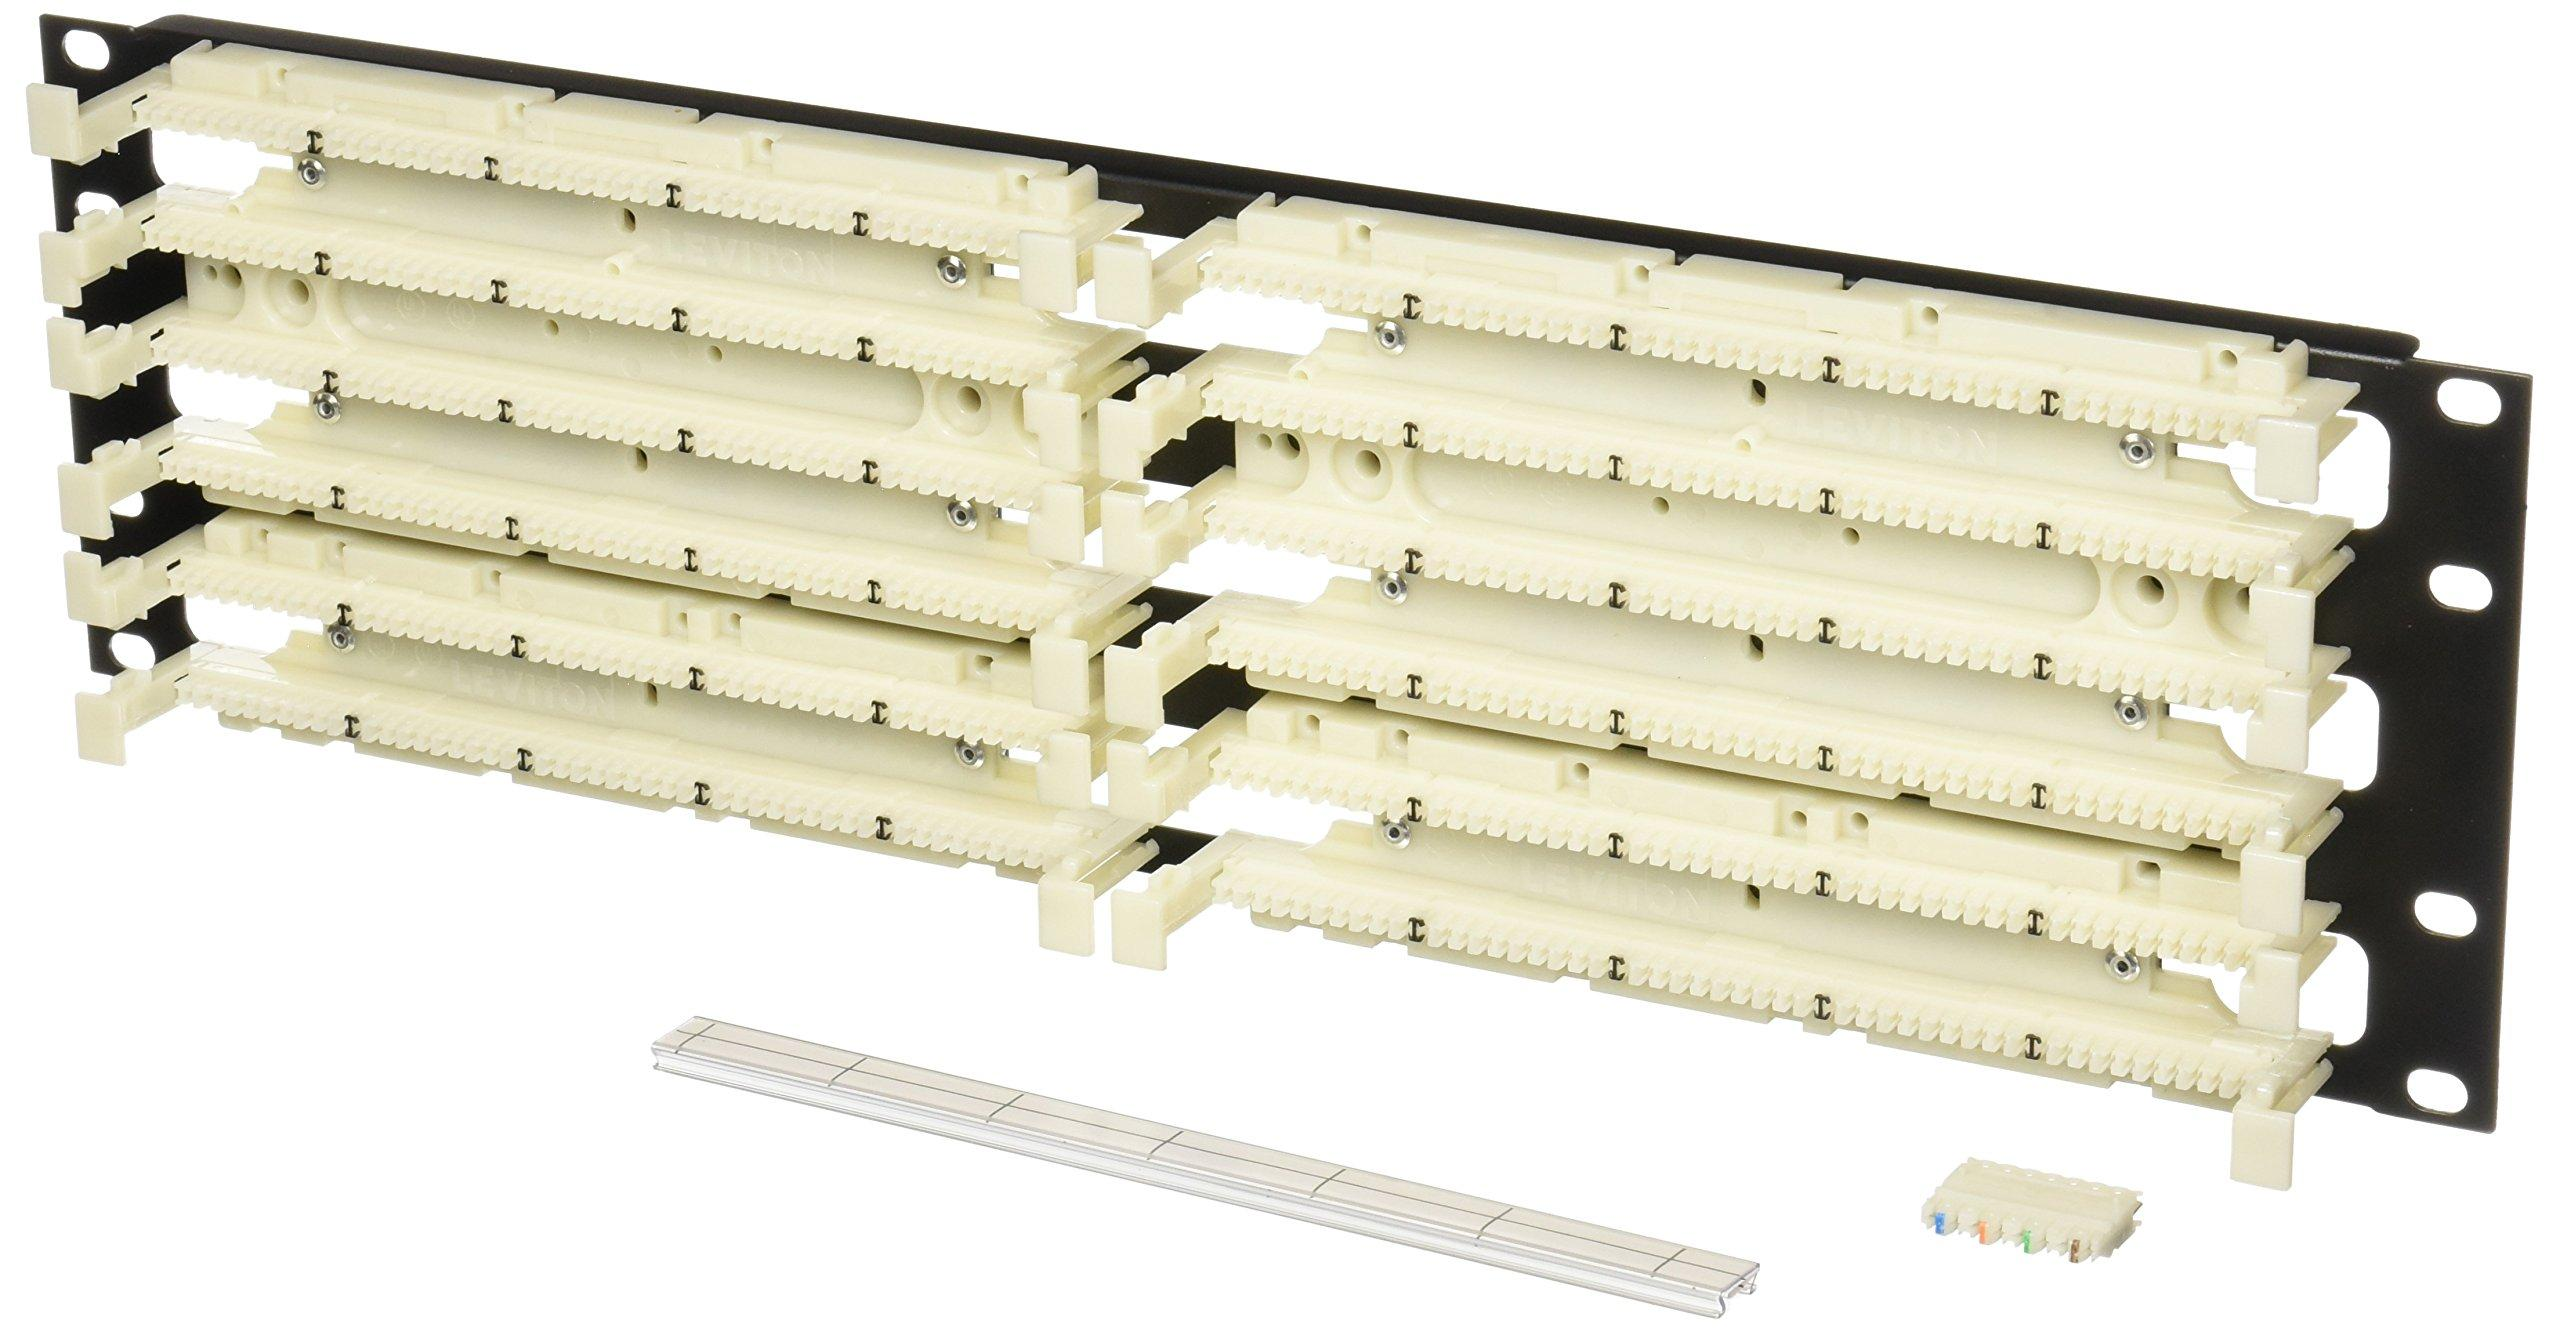 Leviton 41dbr 3f4 Gigamax 5e 110 Style Wiring Block Rack Mount Kit Installation Cat With